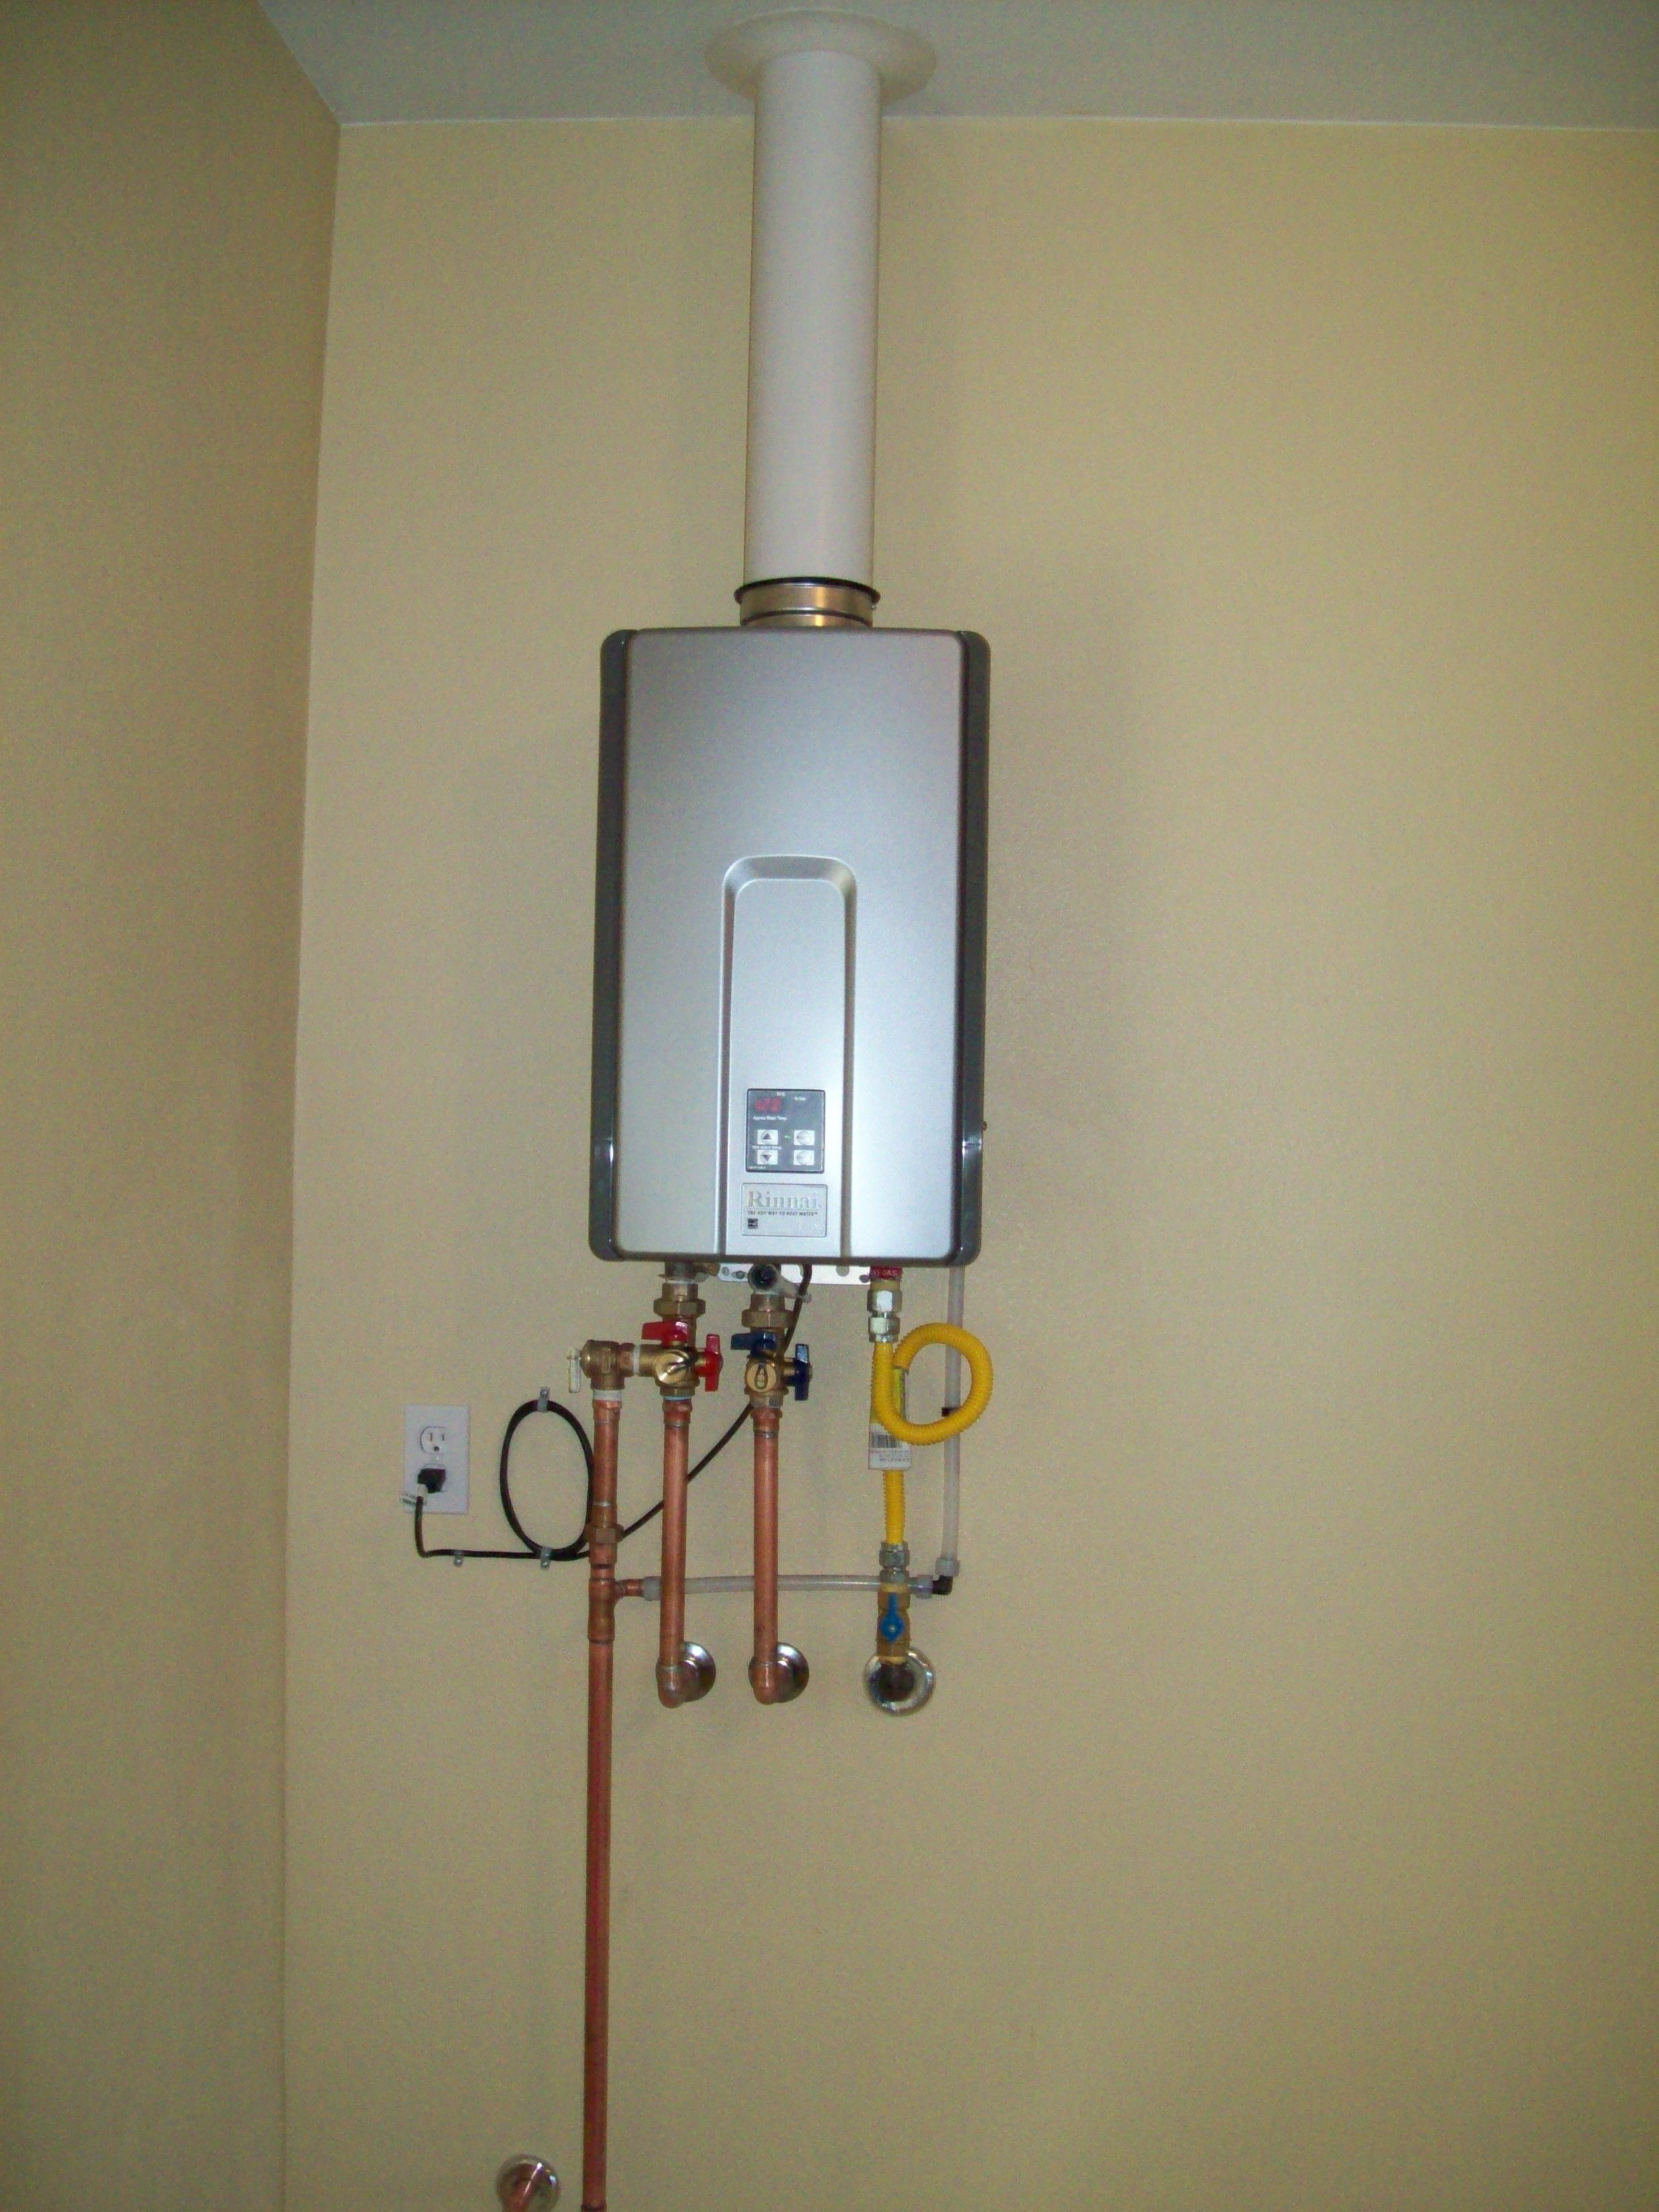 Pros and cons of gas tankless water heaters - Water Heaters Why You Should Consider Going Tankless